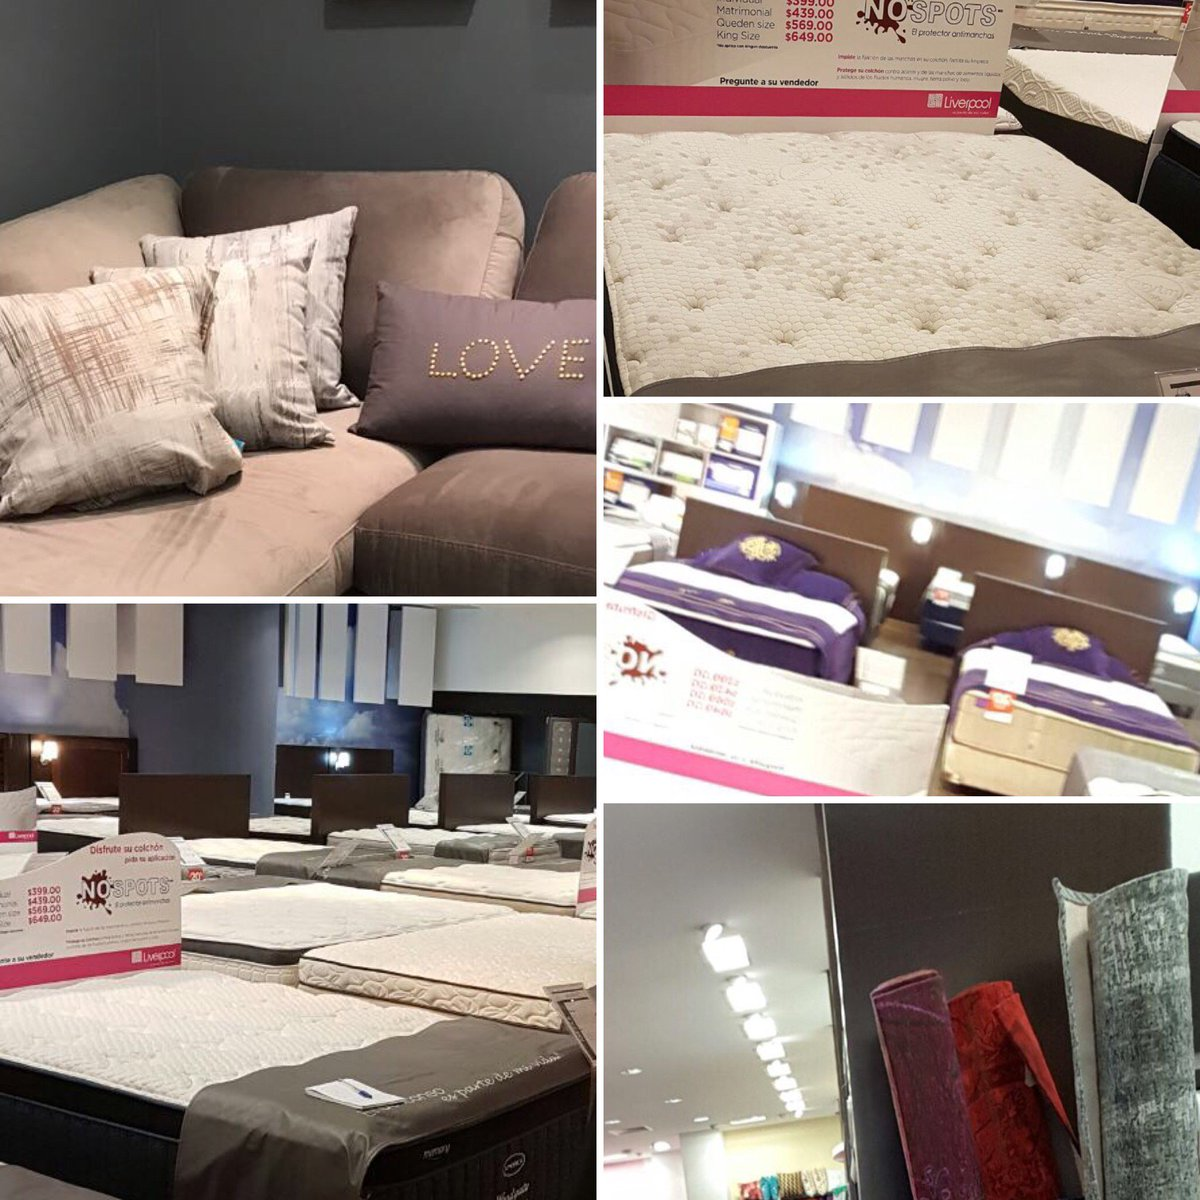 Boyteks Tekstil On Twitter Mattress Ticking Upholstery Fabric And Carpets Are In The World S Most Important Department Liverpool